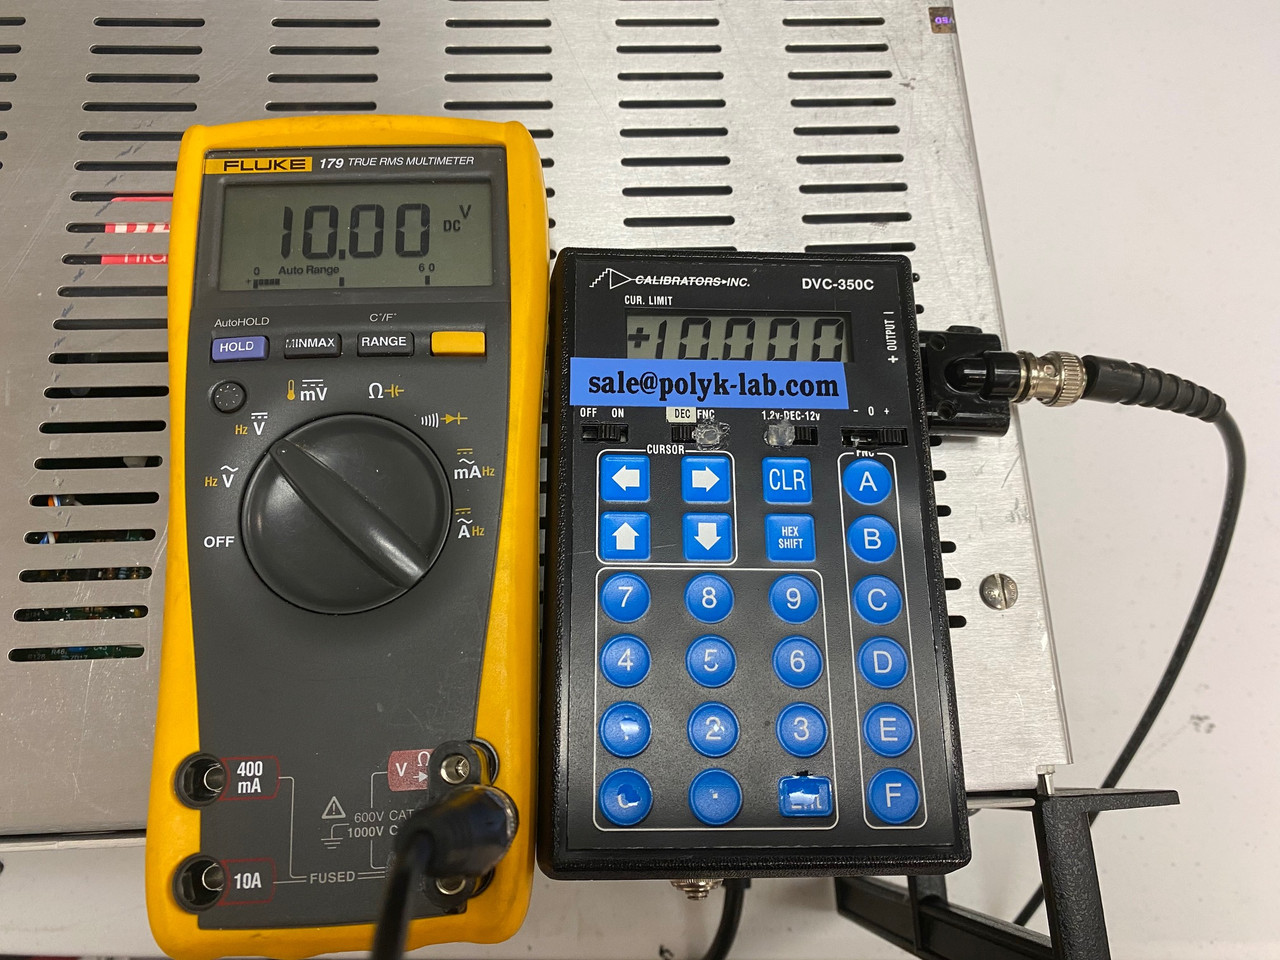 Trek10/40 +/-10 kV/40 mA High Voltage Amplifier & Power Supply with All Cables, Refurbished